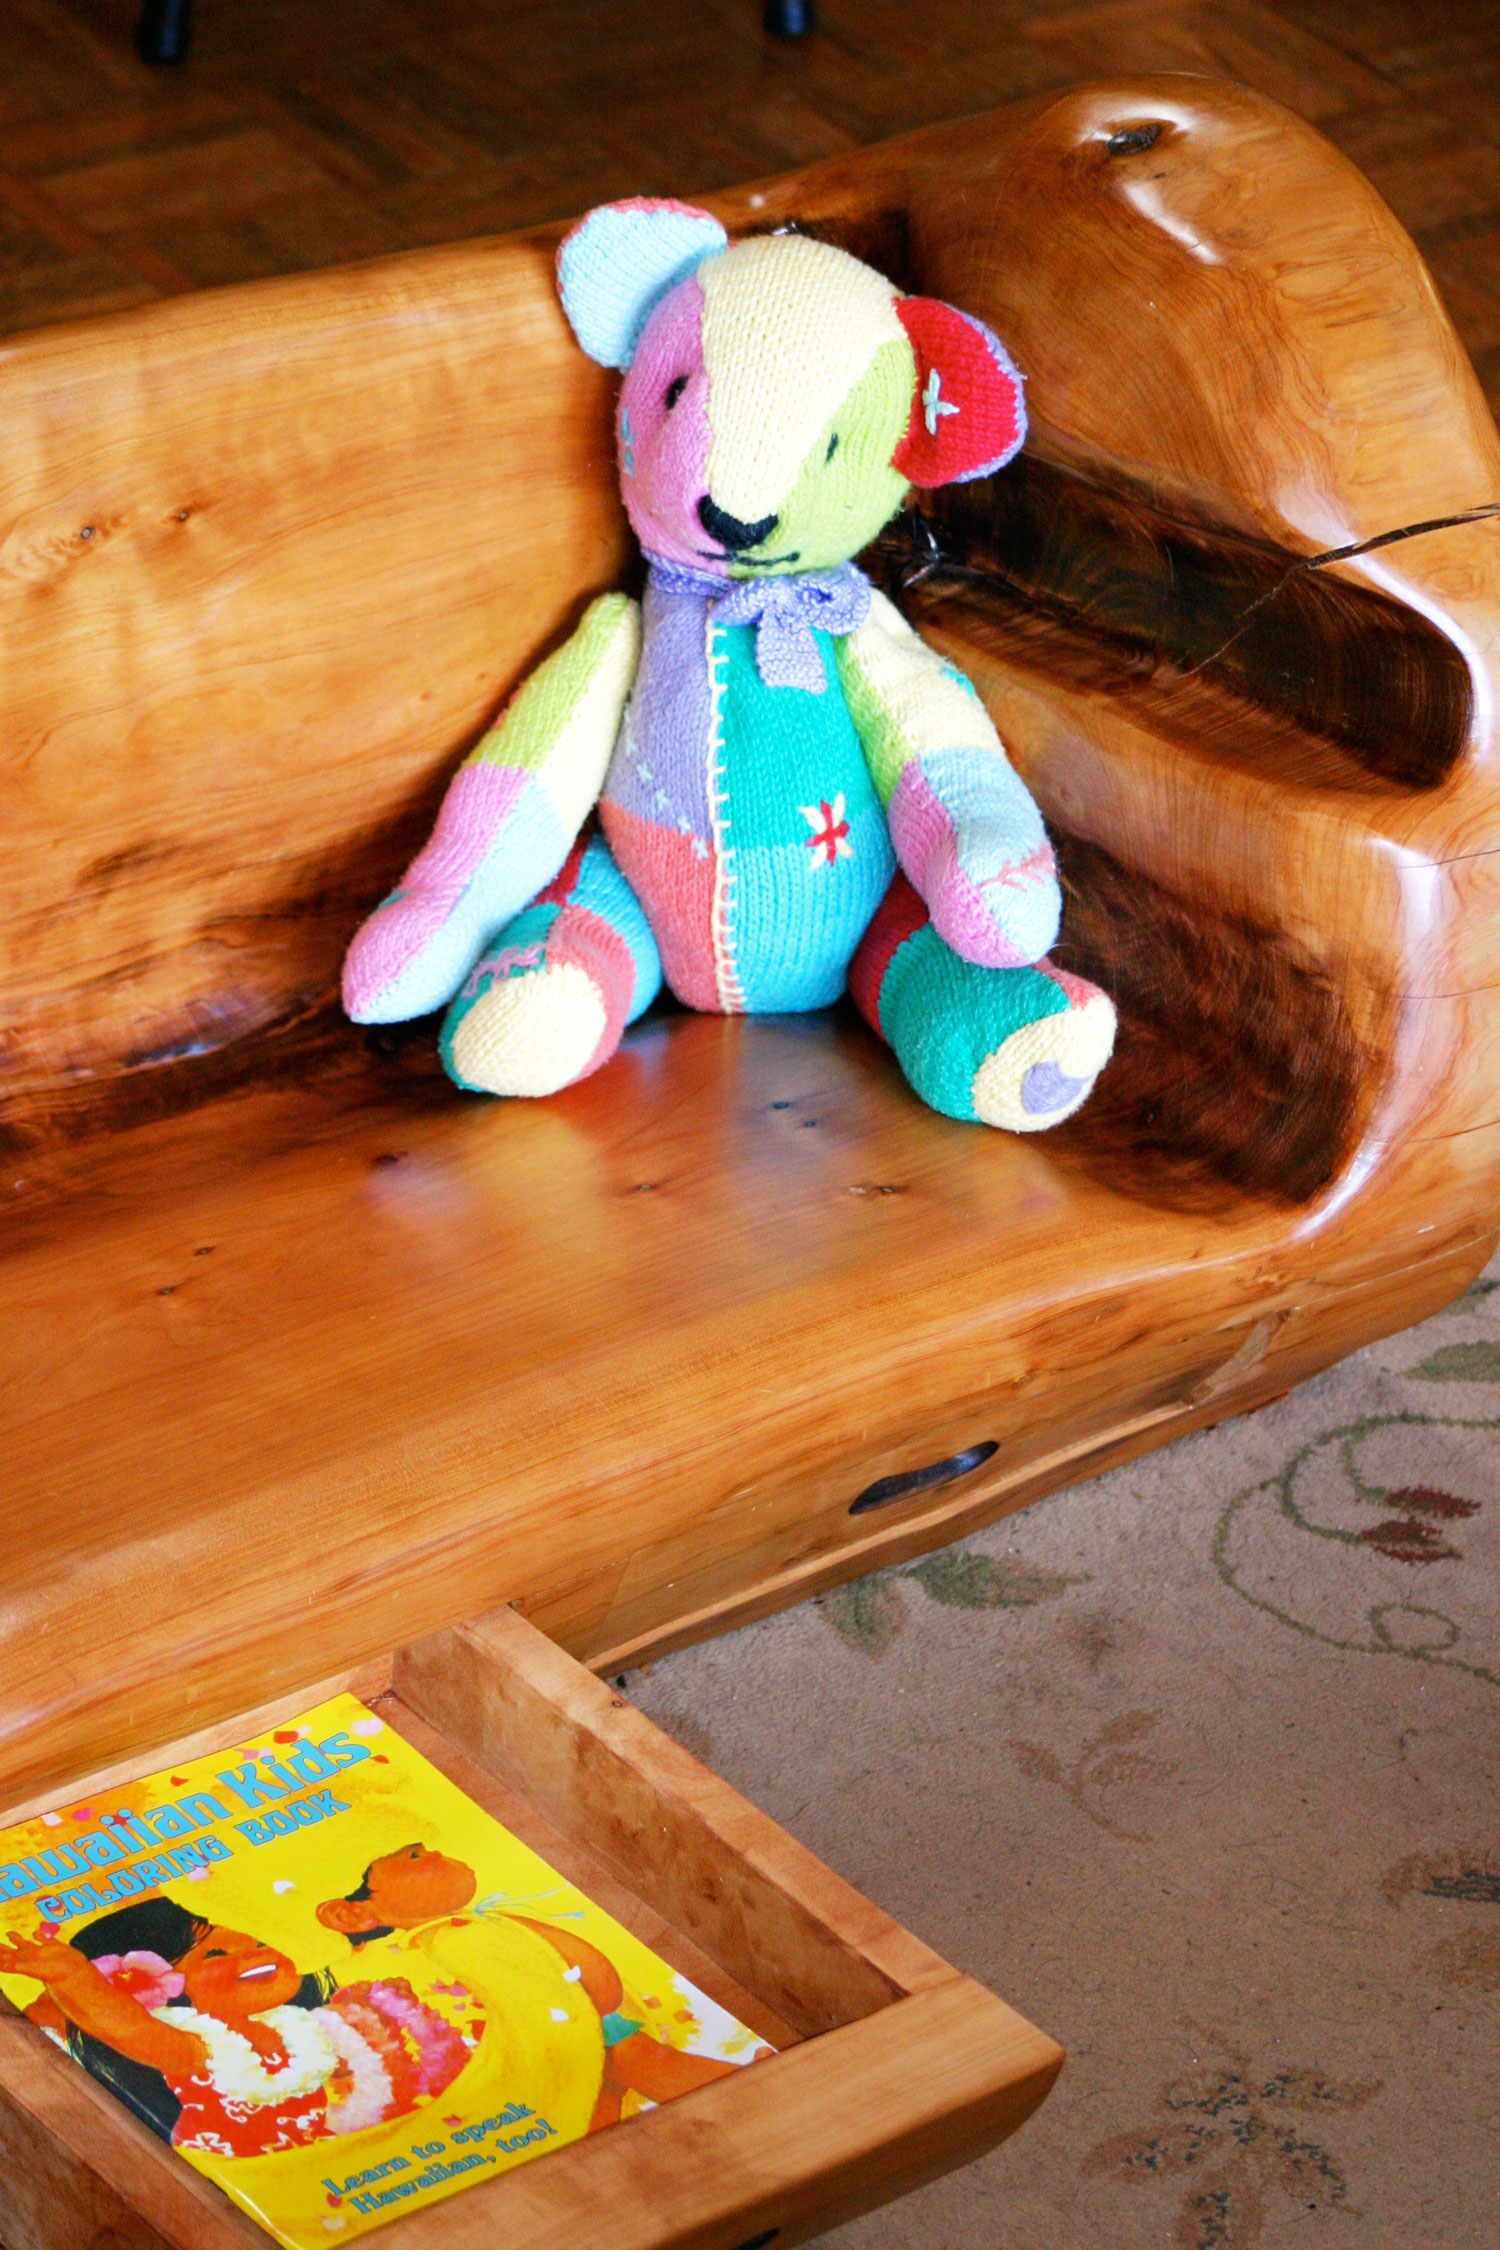 Solid wood children's bench